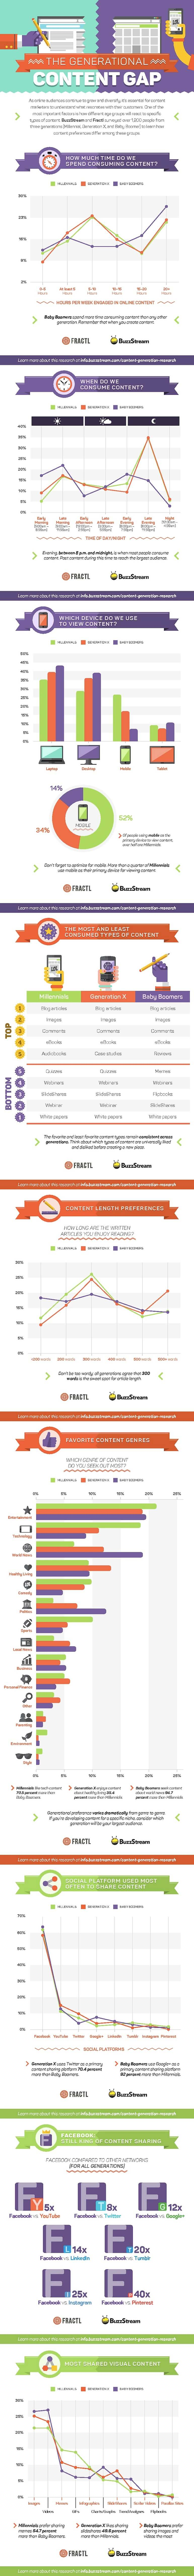 Infographic: The Generational Content Gap - How different generations consume content online